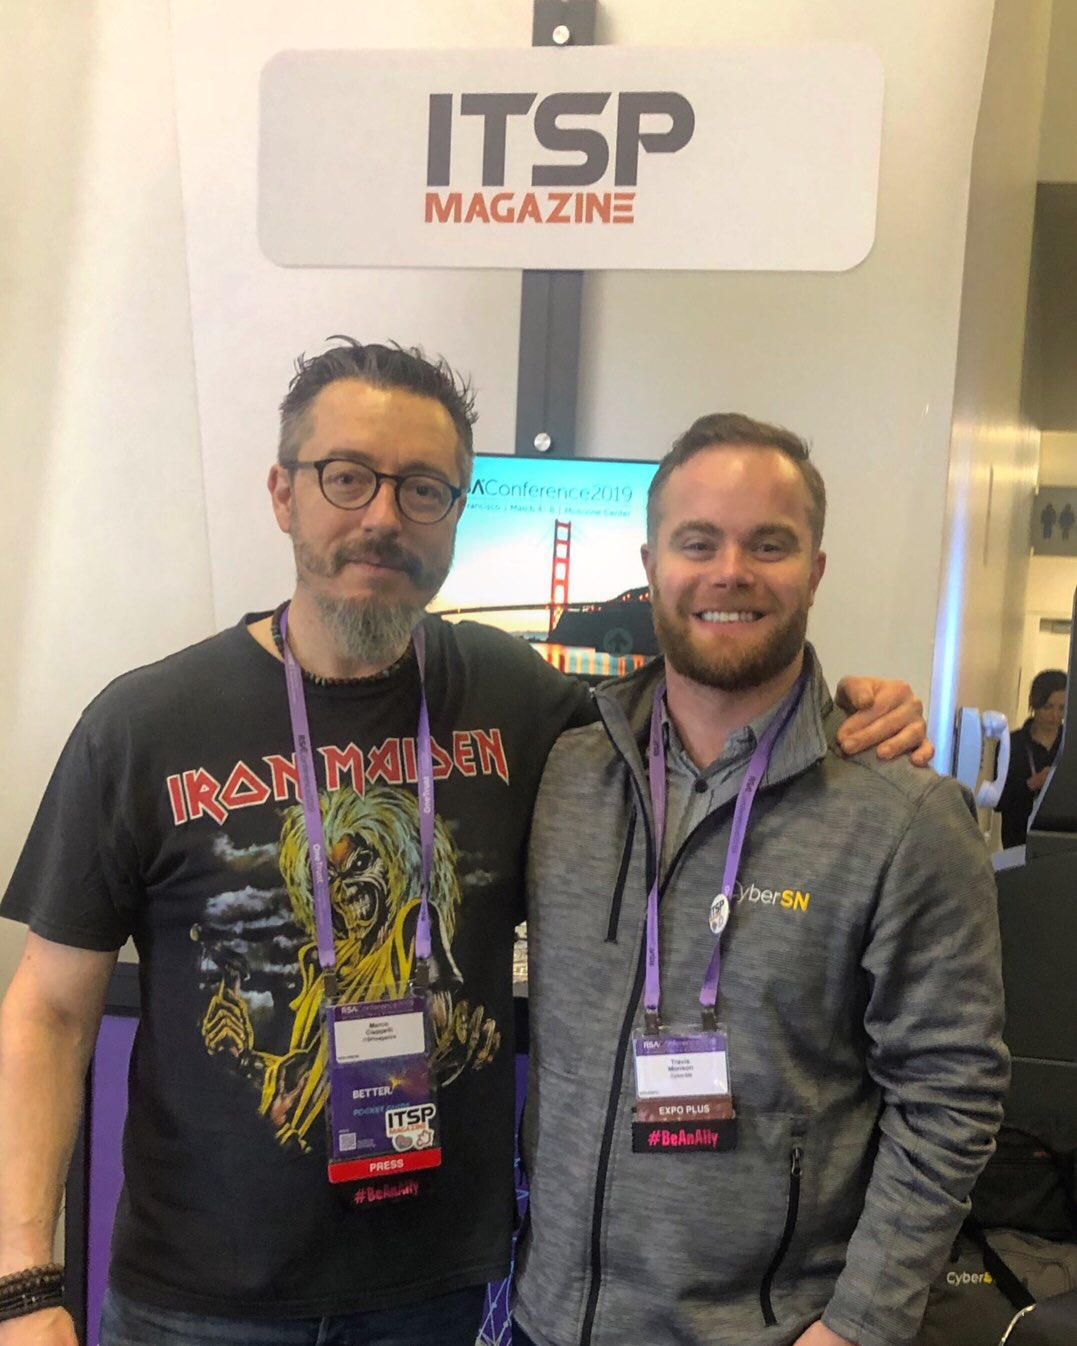 Marco Ciappelli and Travis Monson (  CyberSN  )